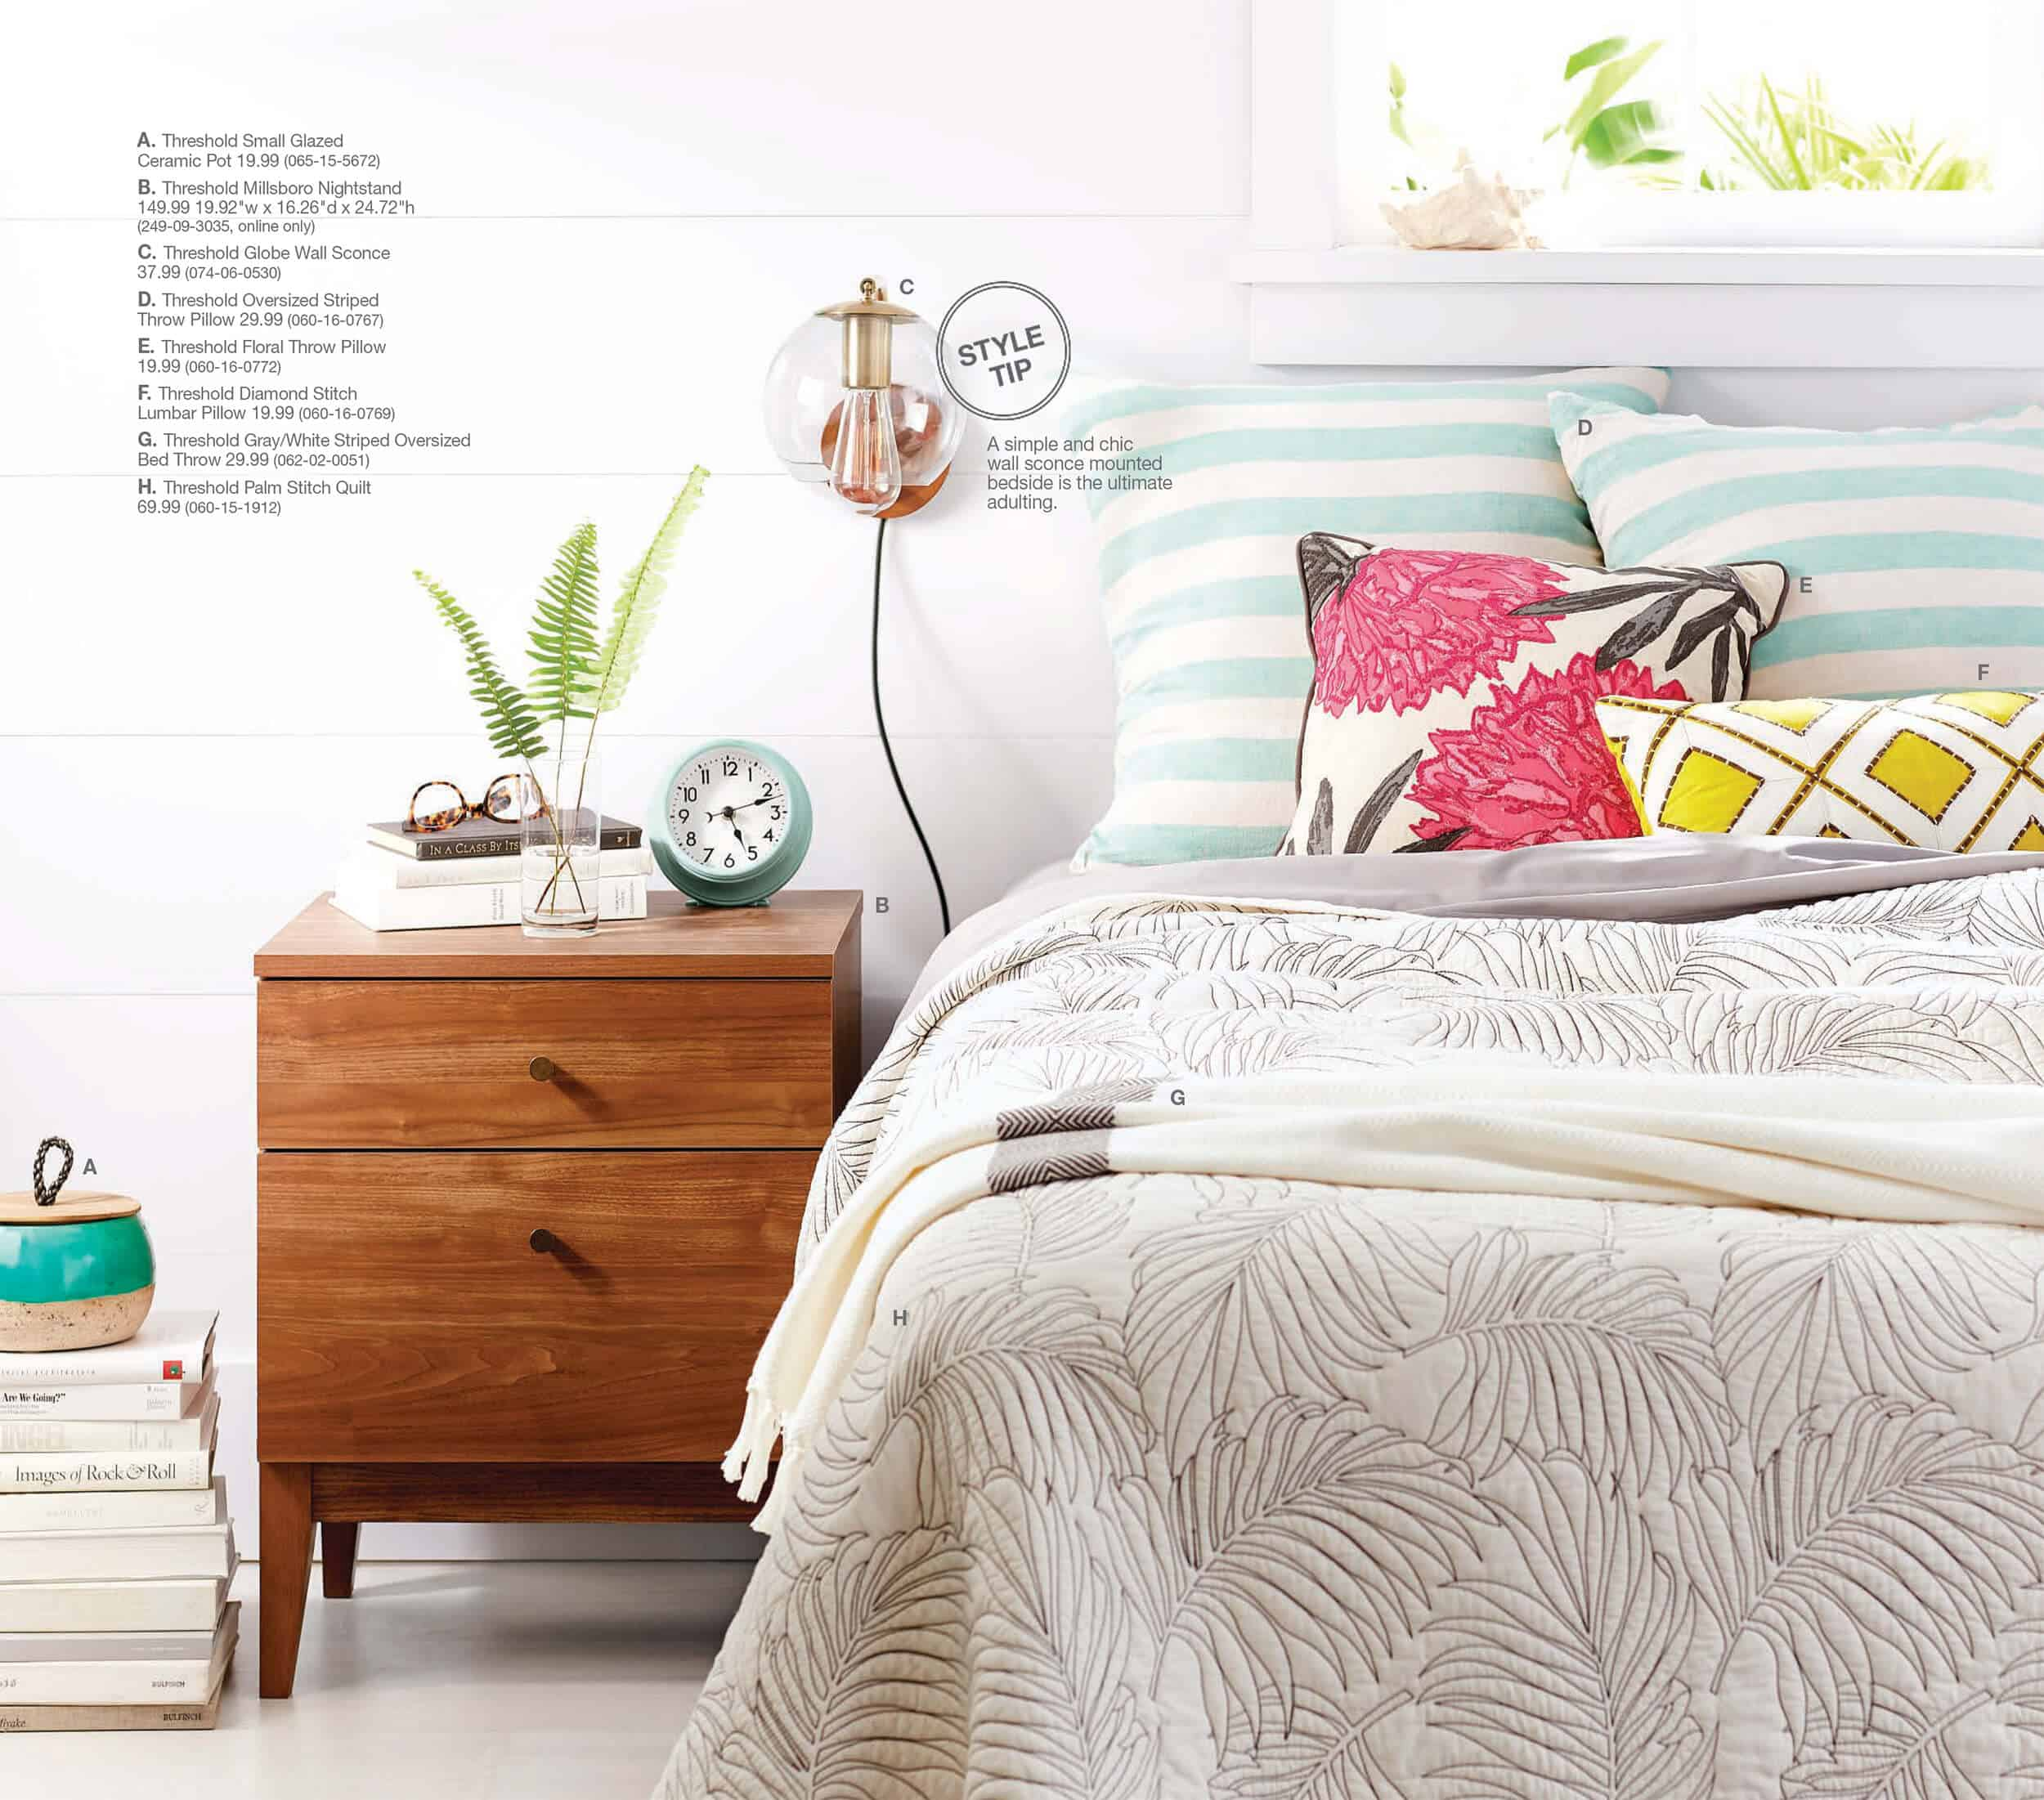 Emily Henderson_Target_First Look_Spring Catalog_123